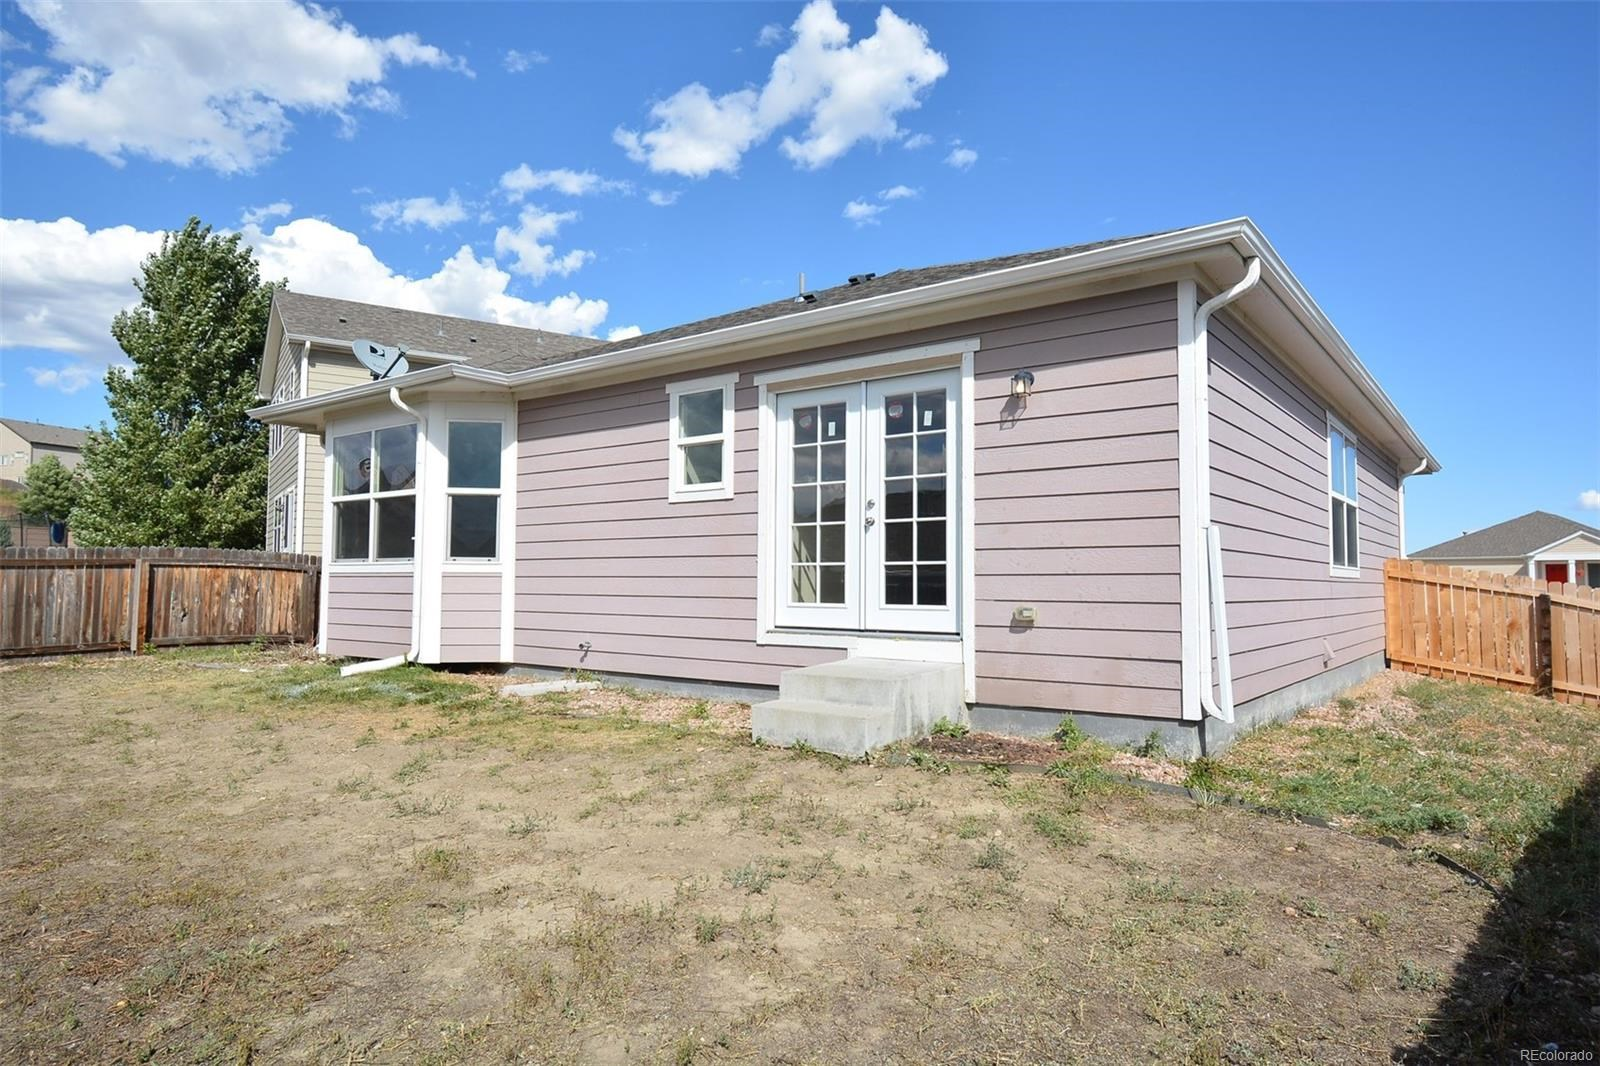 MLS# 7575005 - 31 - 7950 Calamint Court, Fountain, CO 80817